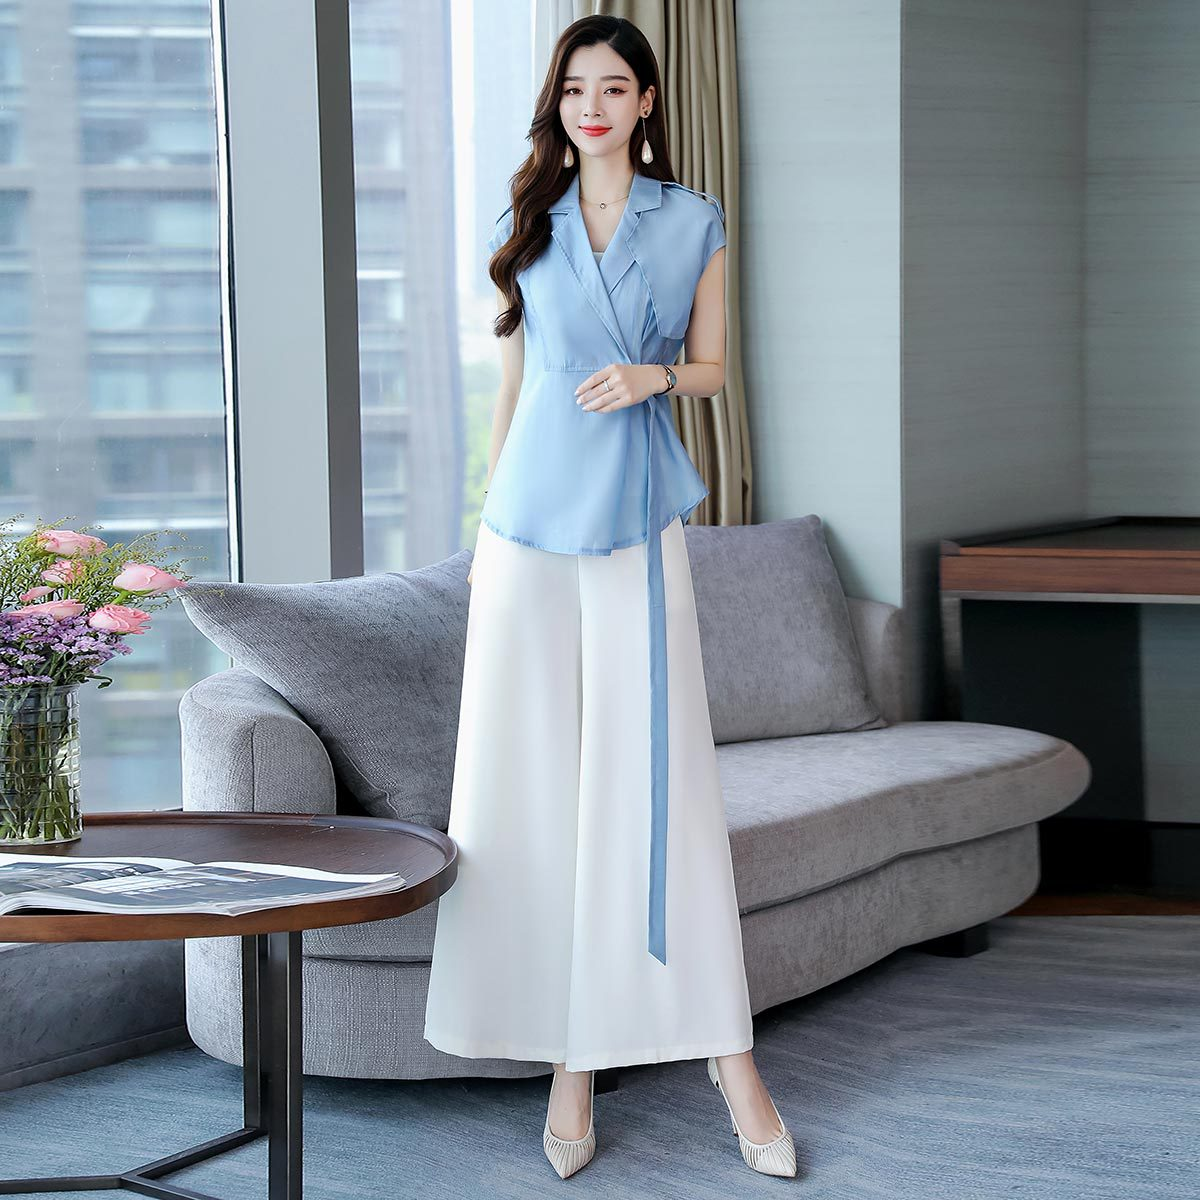 Fashion Chiffon WOMEN'S Suit 2019 Summer Royal Sister Suit Collar Loose Pants Camisole Popular Three-piece Set Slimming Graceful